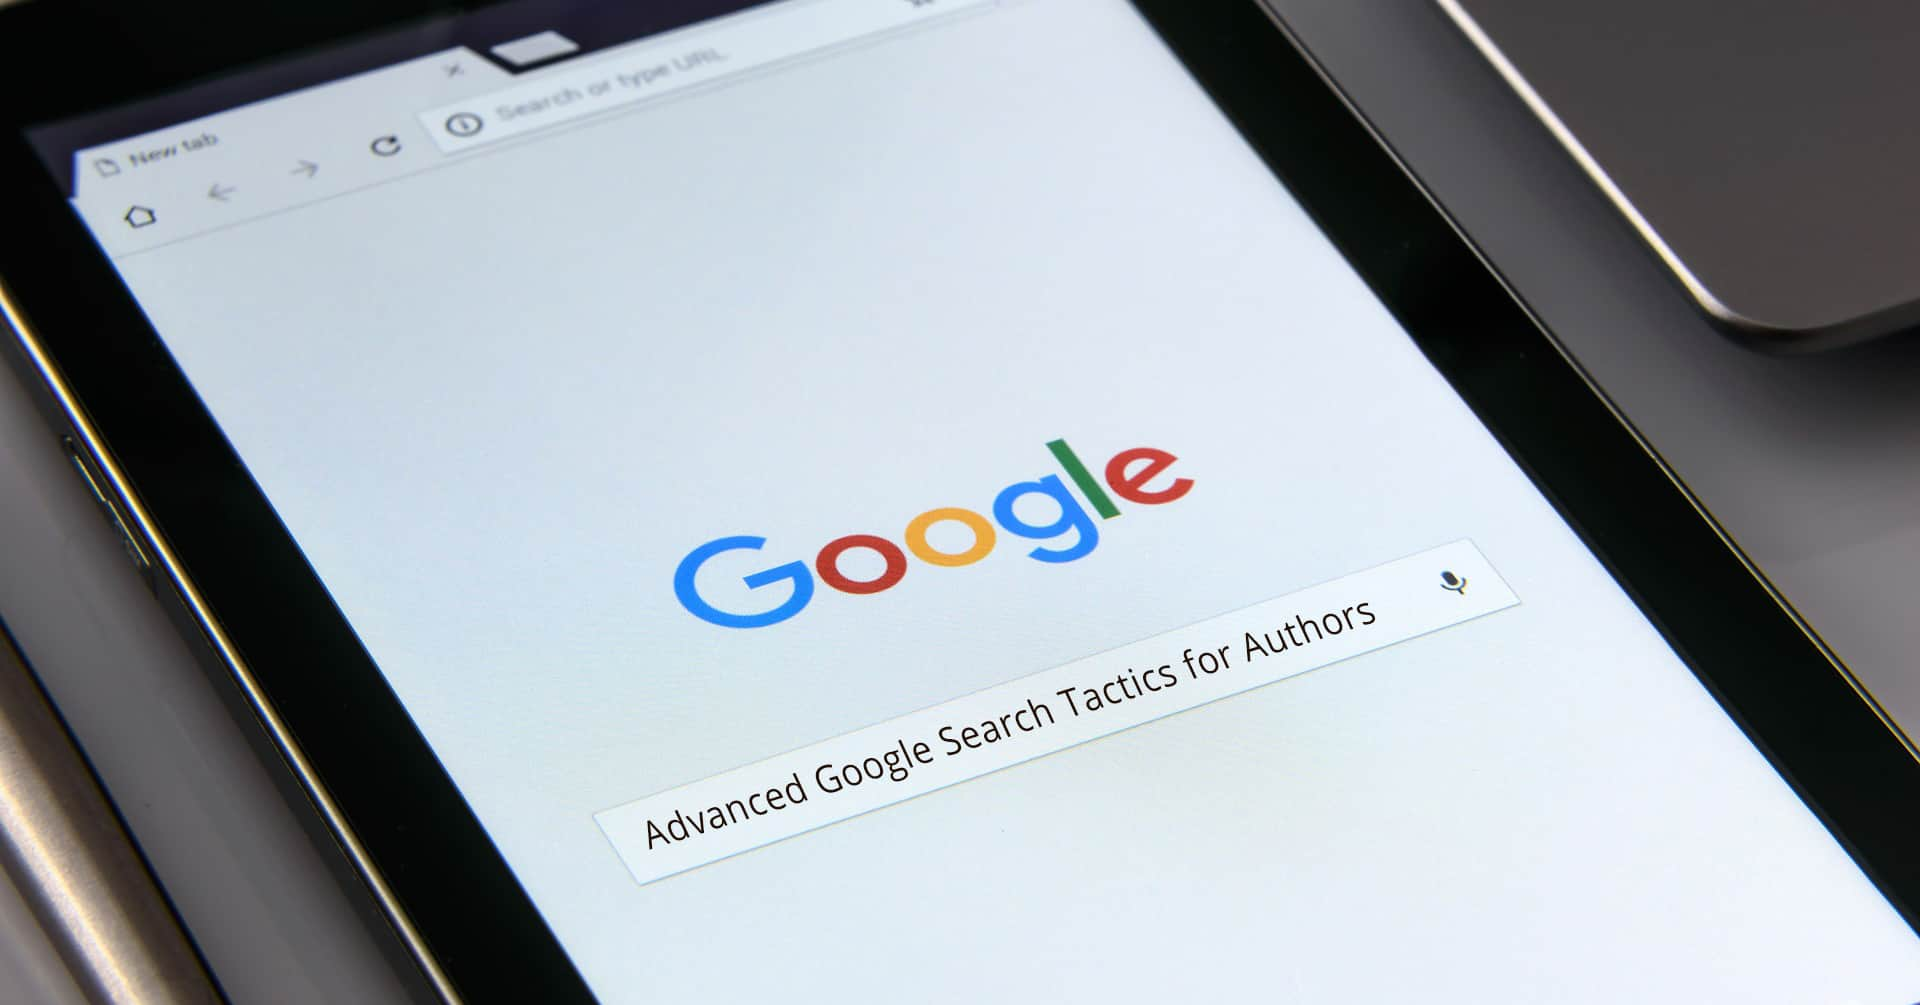 google search tactics for authors